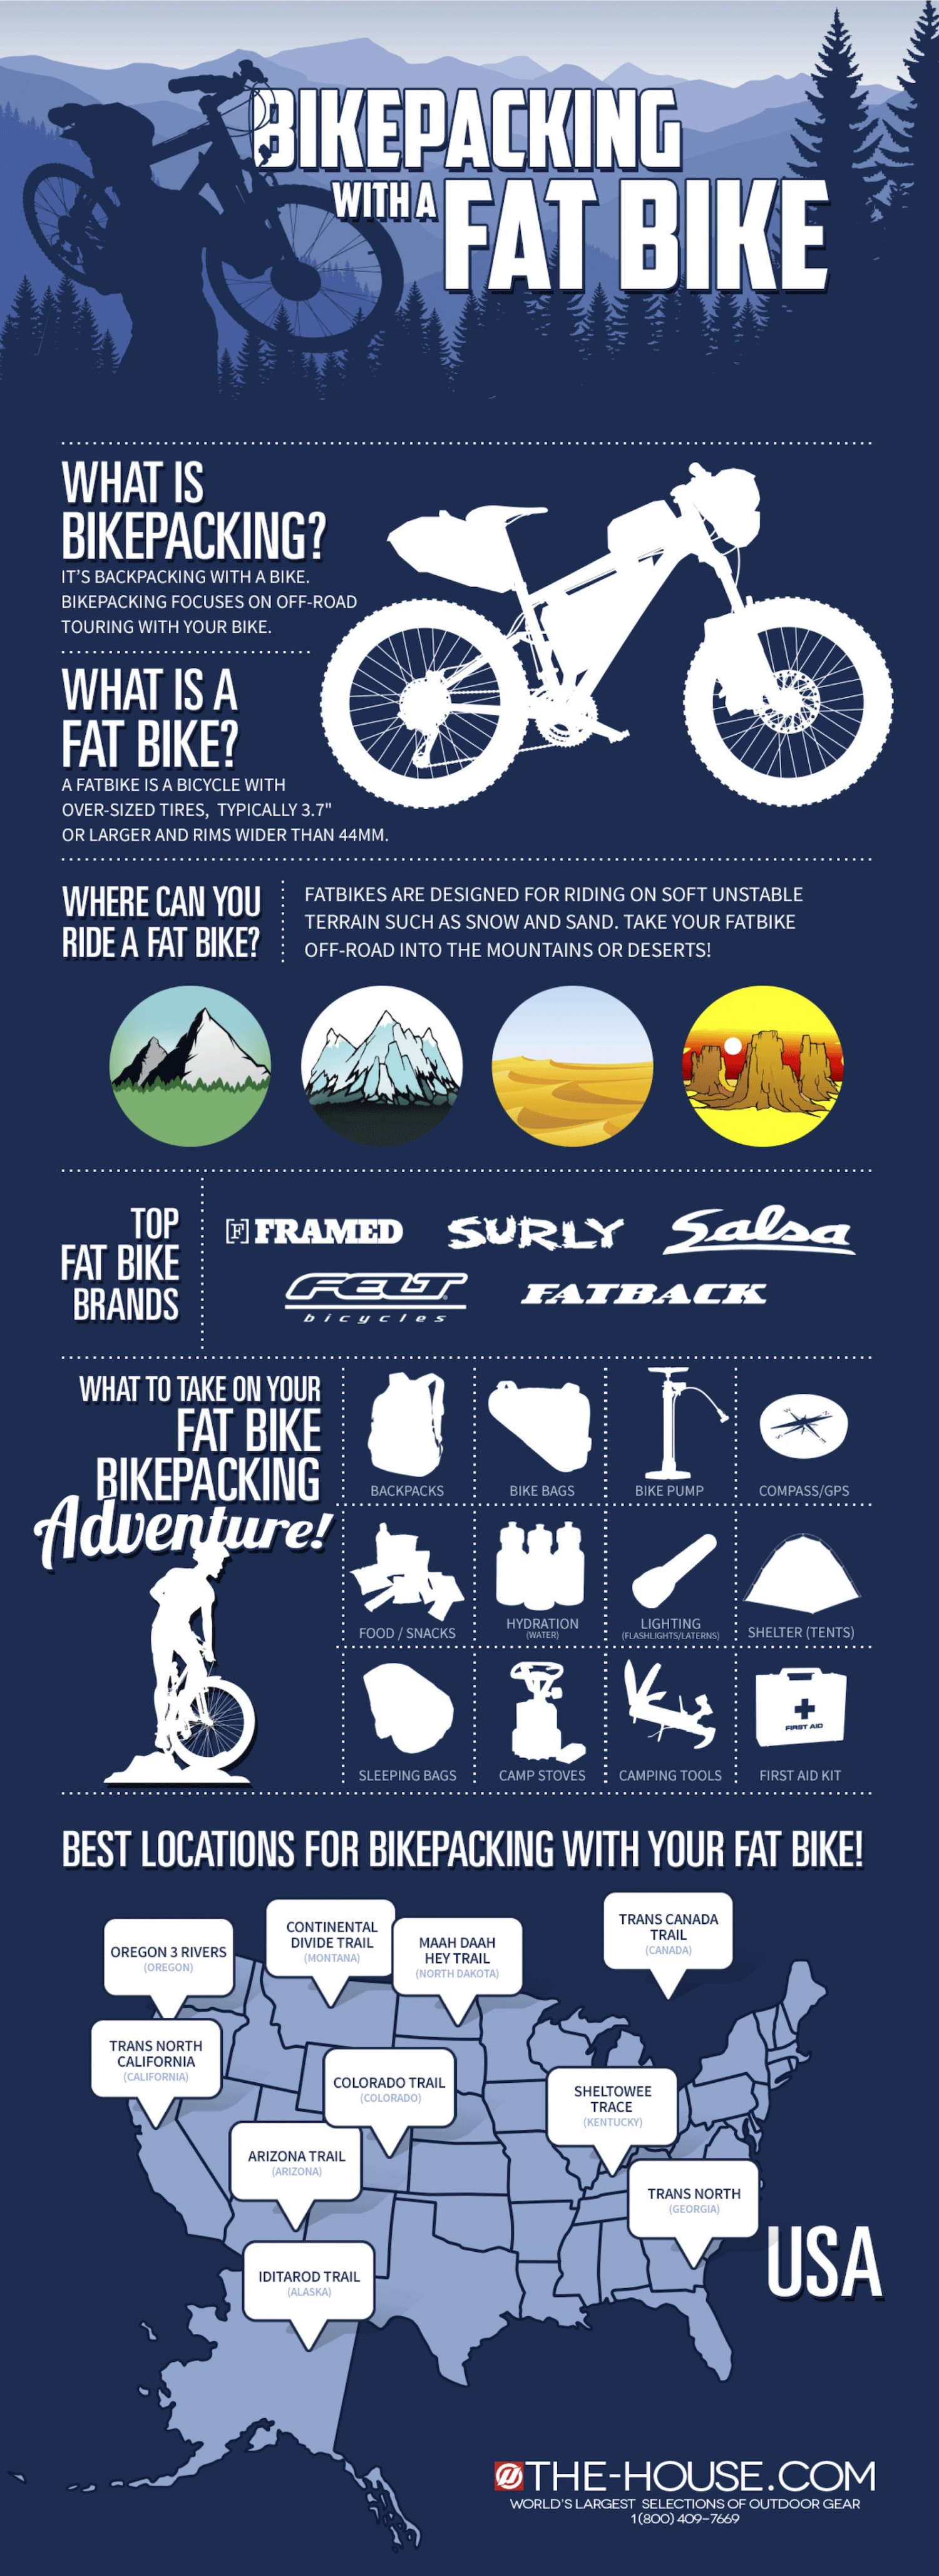 Bikepacking with a Fat Bike Infographic